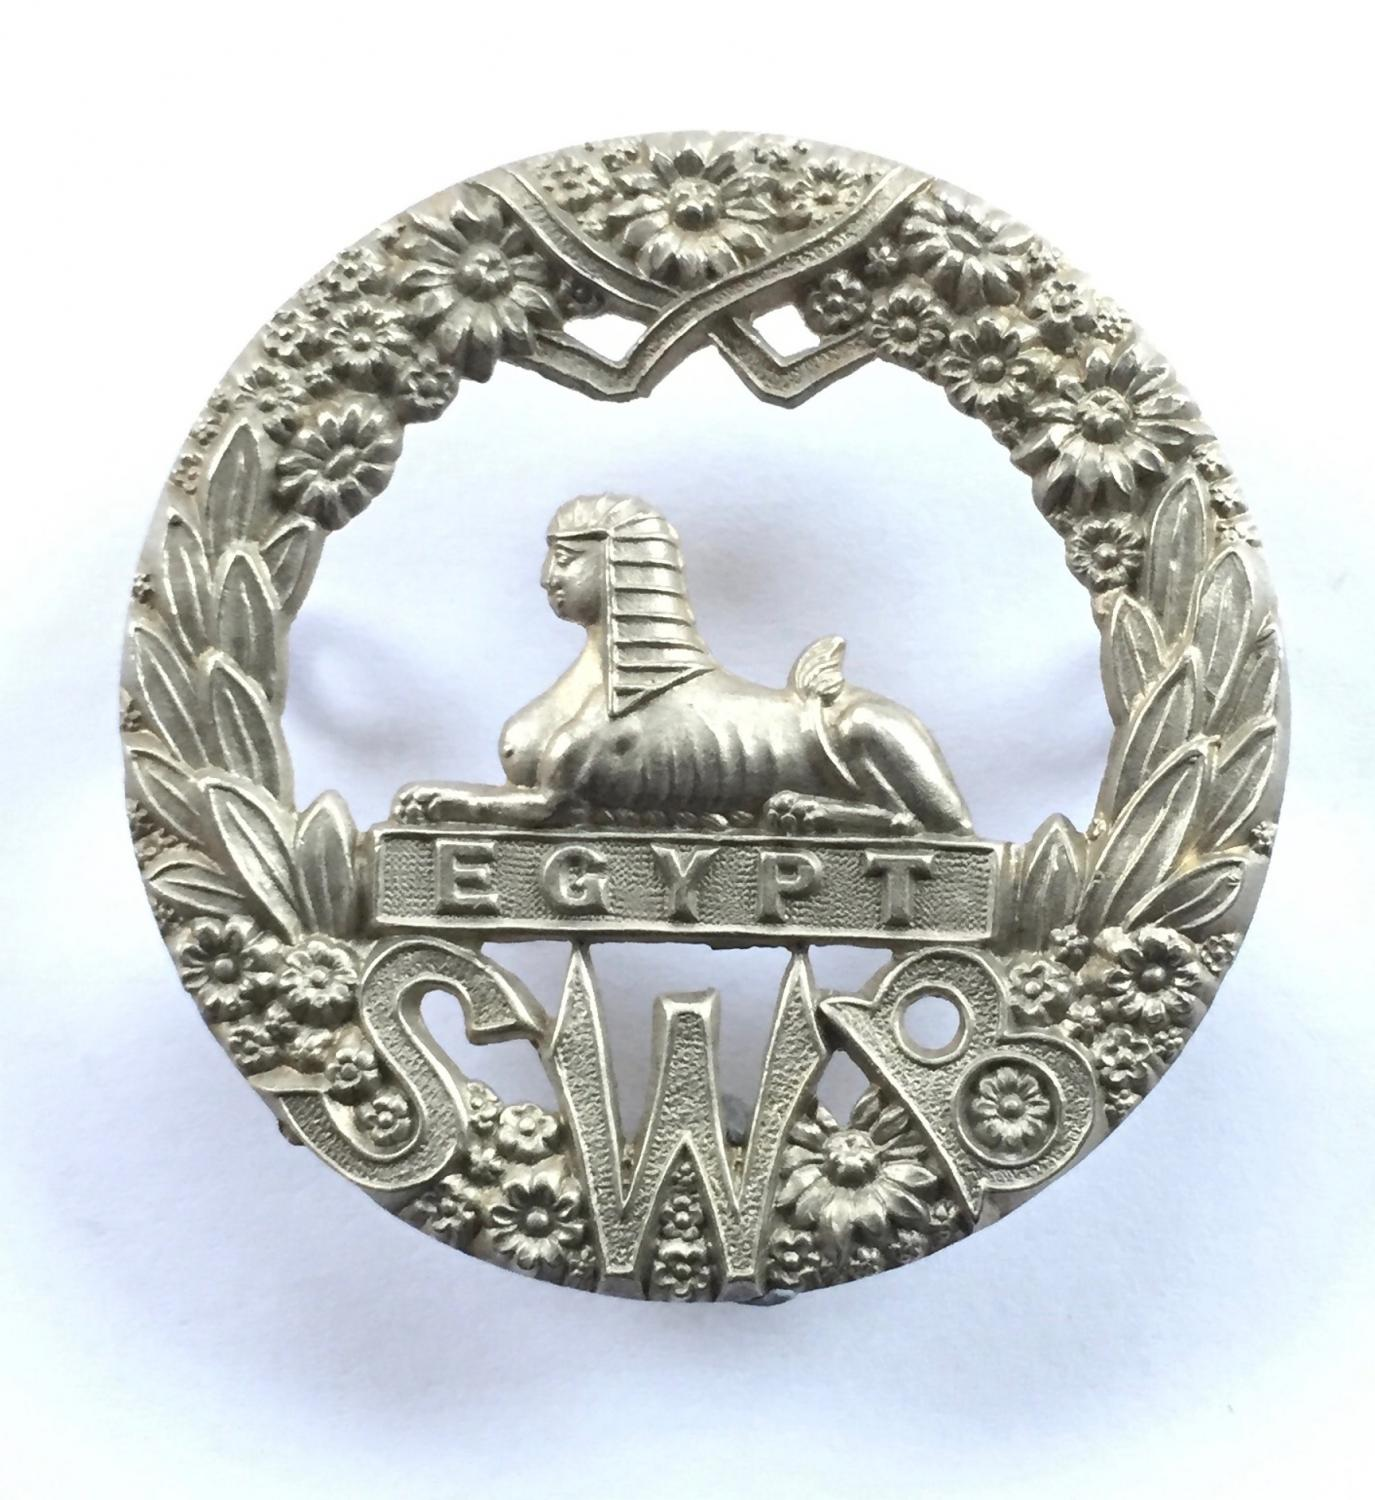 South Wales Borderers white metal cap badge